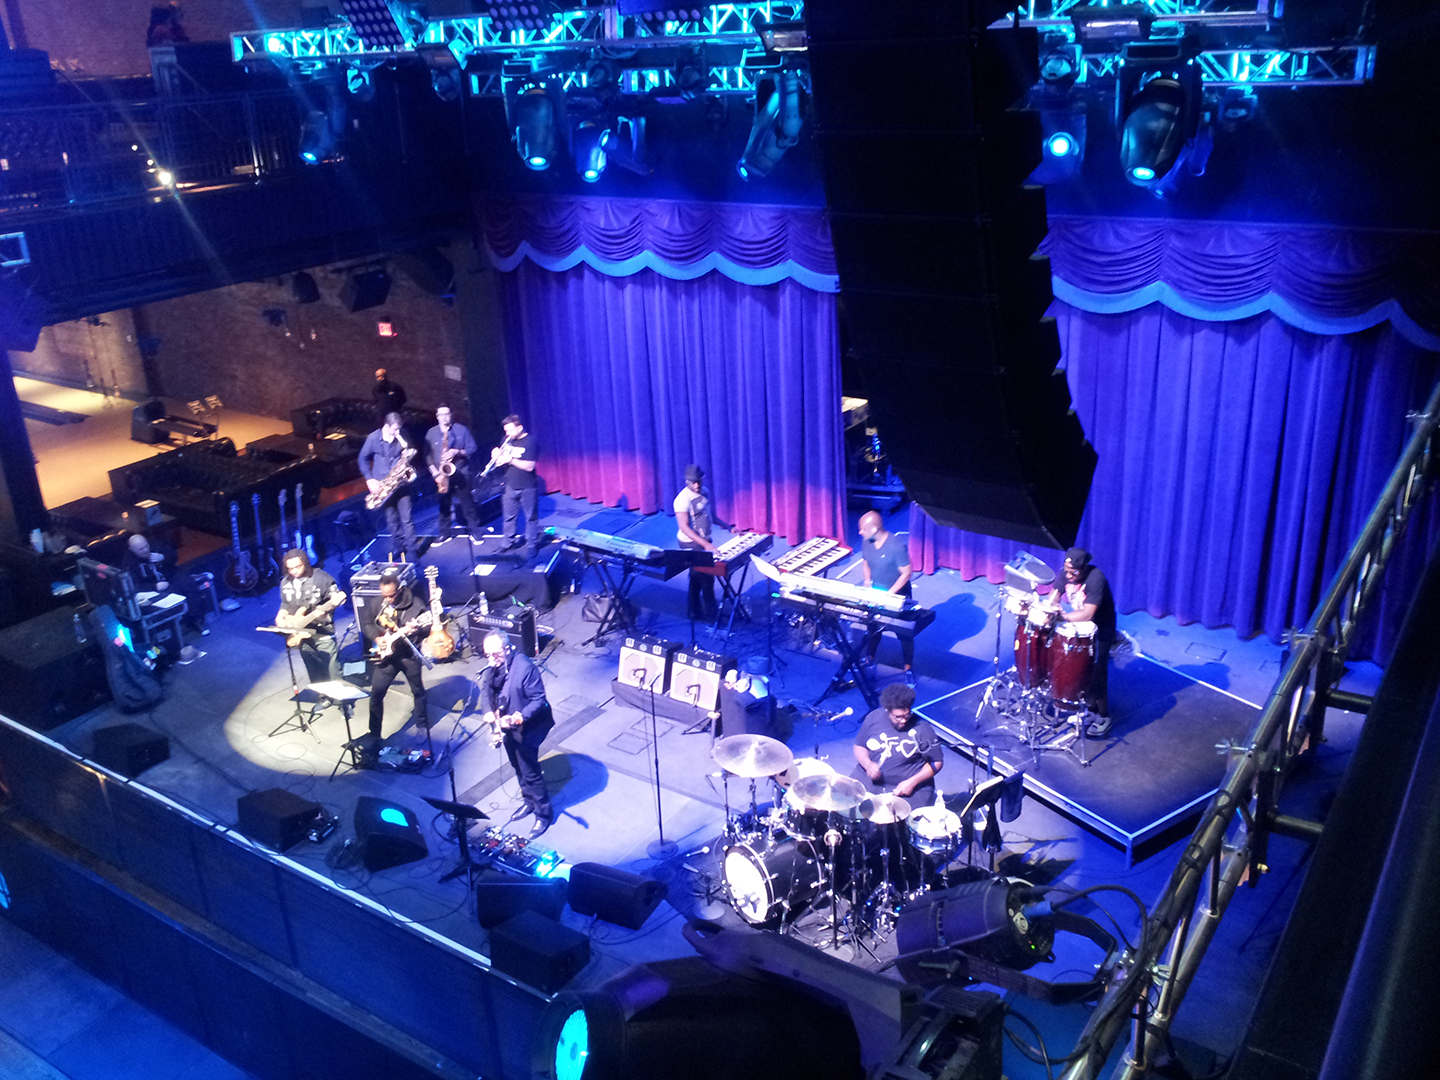 Brooklyn Bowl, Elvis Costello & The Roots rehearsal